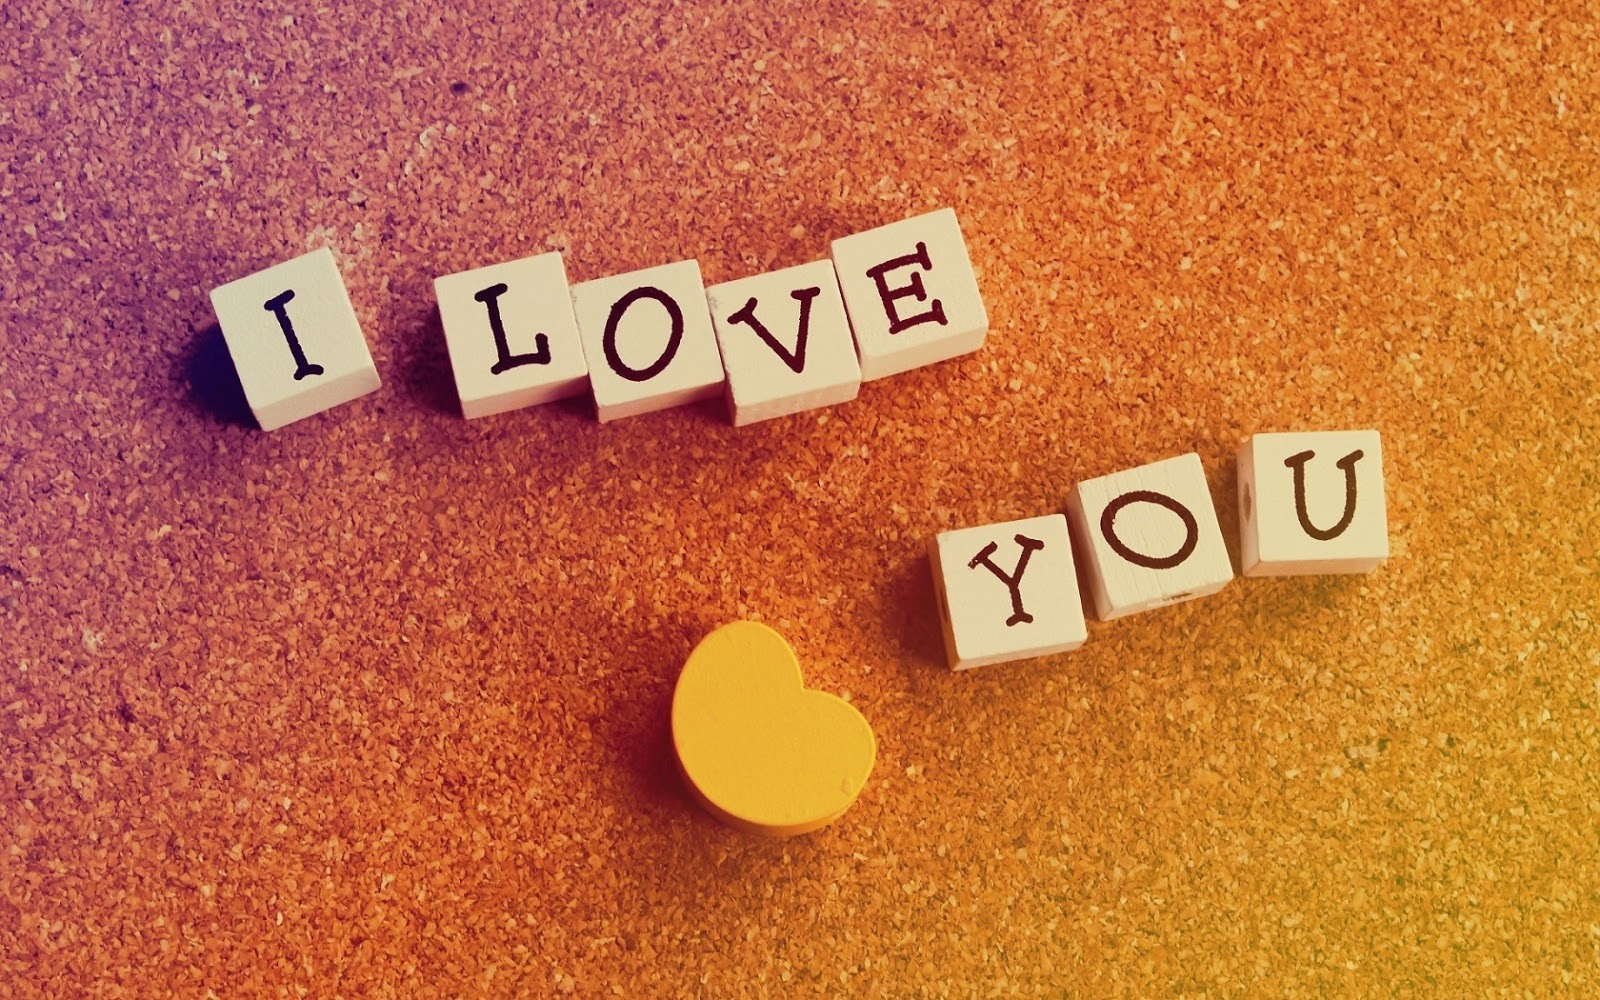 Latest I Love You Images for Facebook Covers